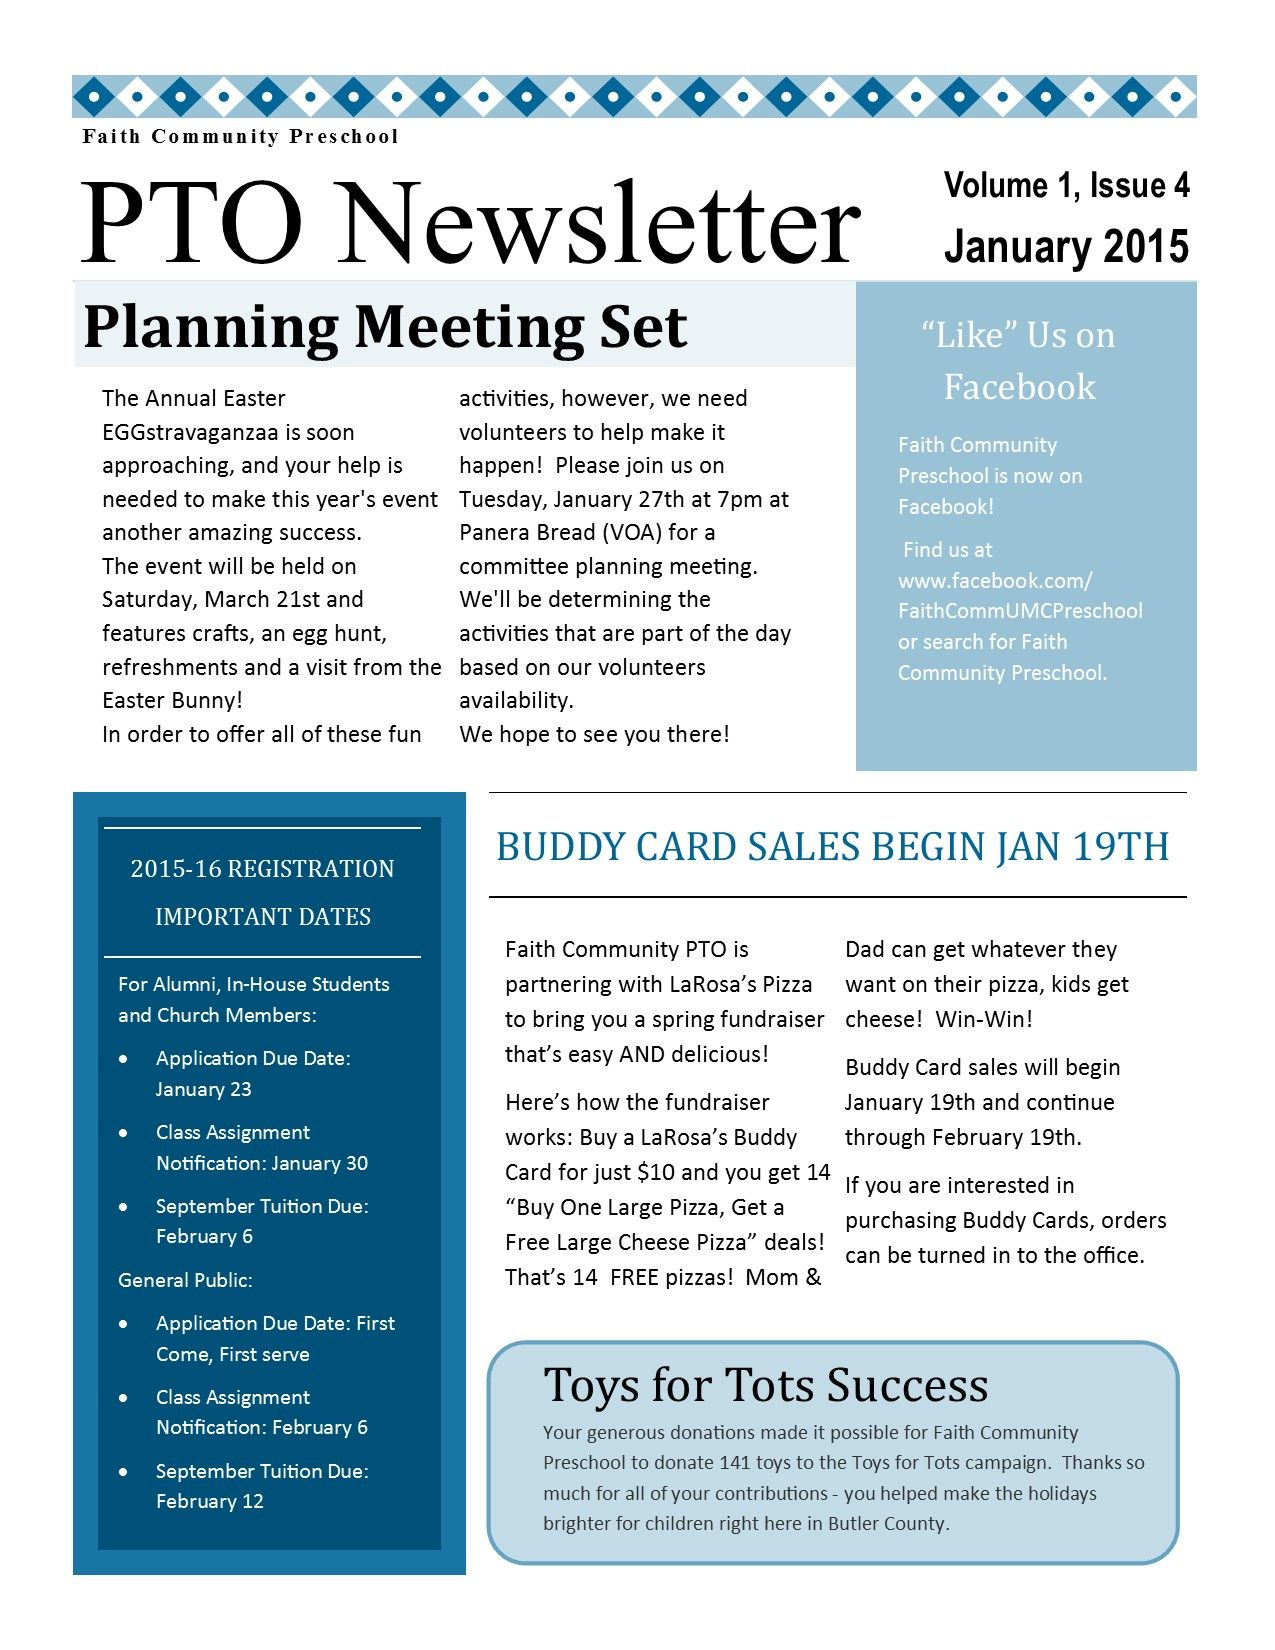 pto newsletter ptsa ideas pta pta school pto meeting